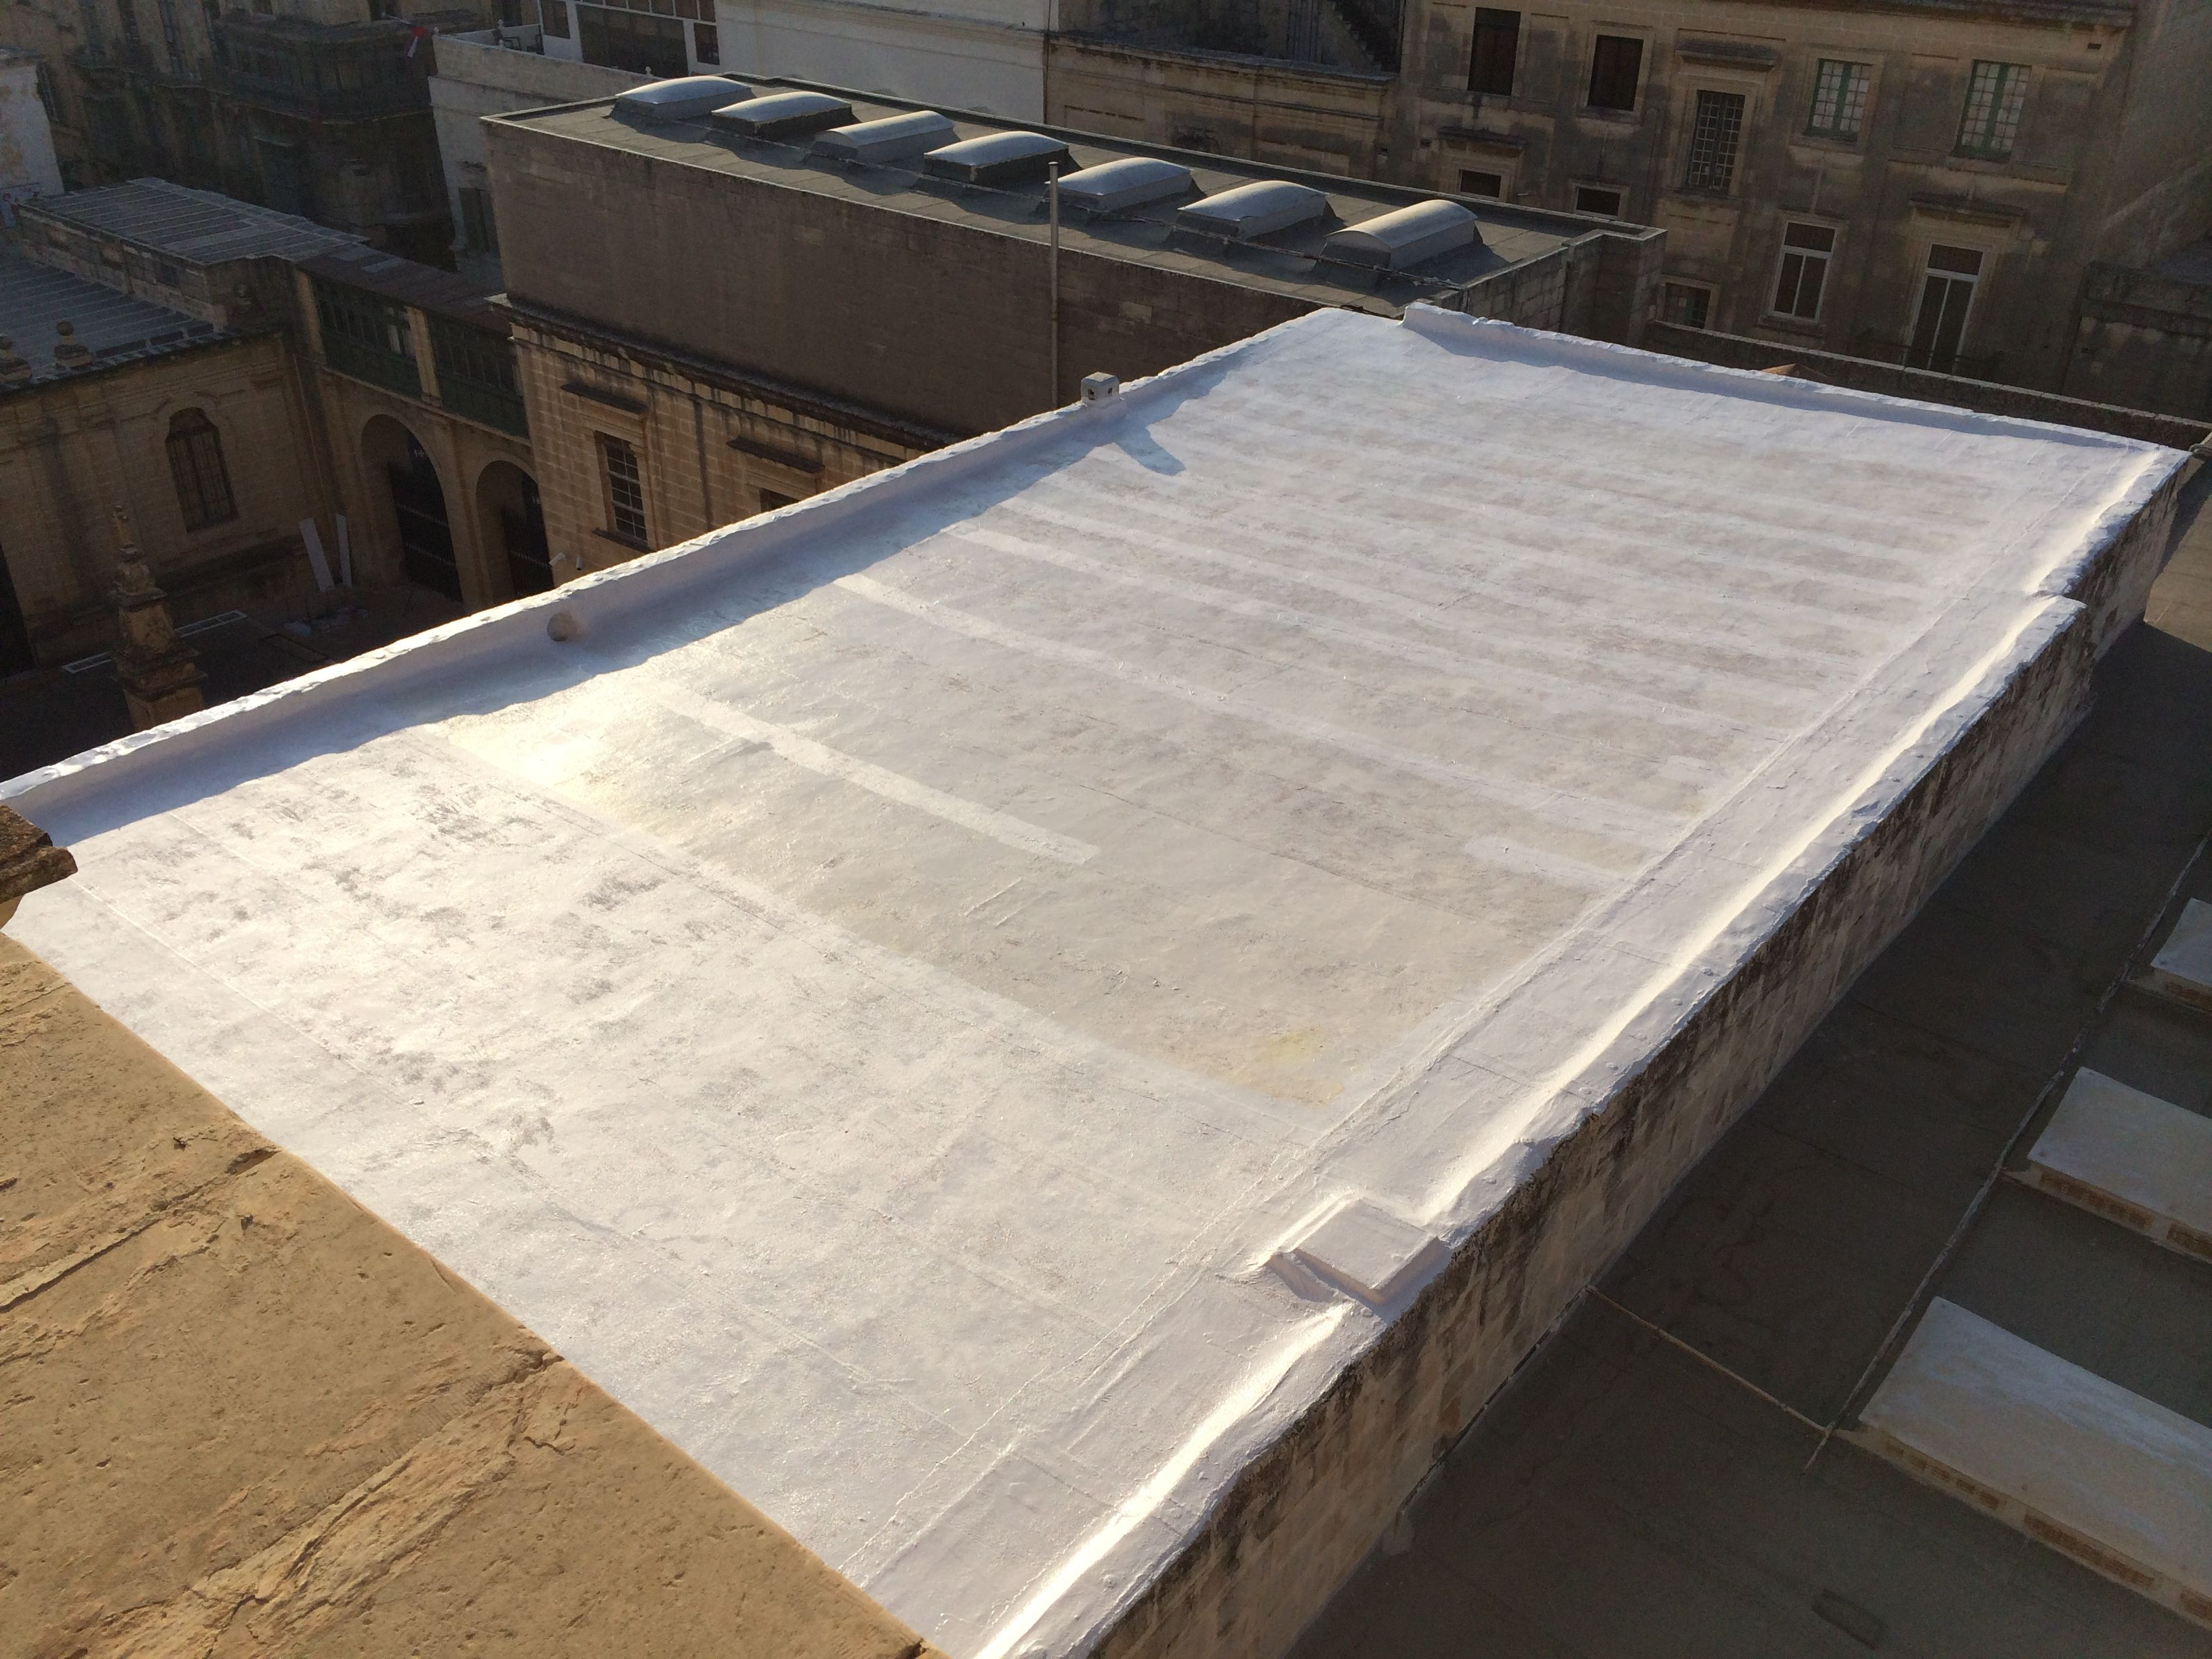 Renovation Of St John S Co Cathedral Roof In Malta Building Renovations Roof